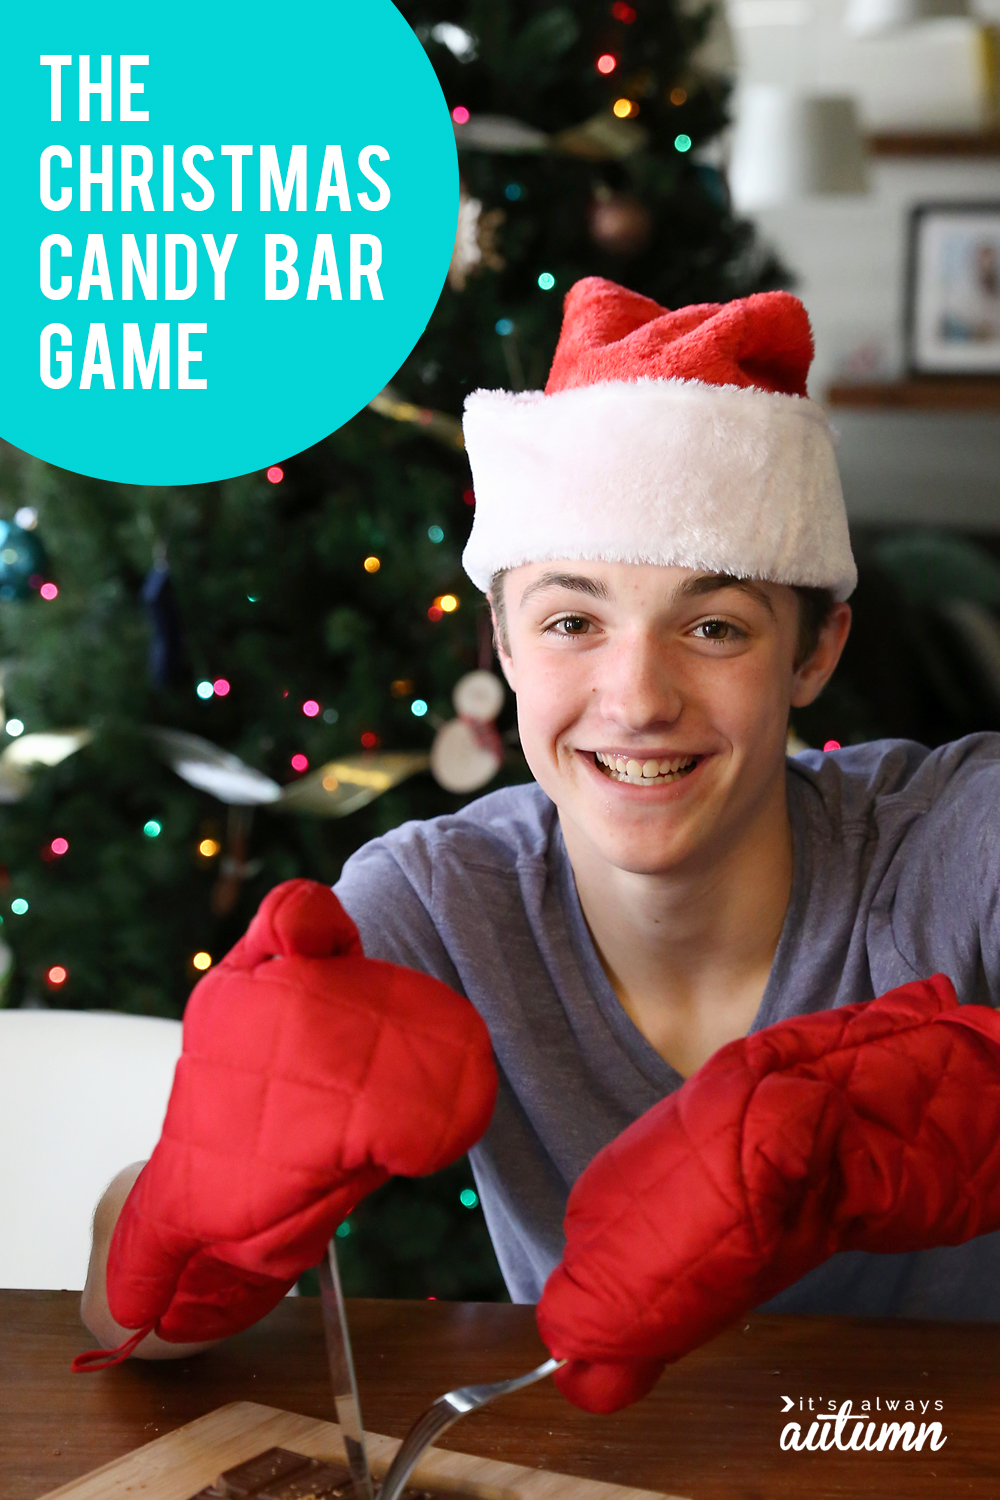 The Christmas candy bar game is so much fun!